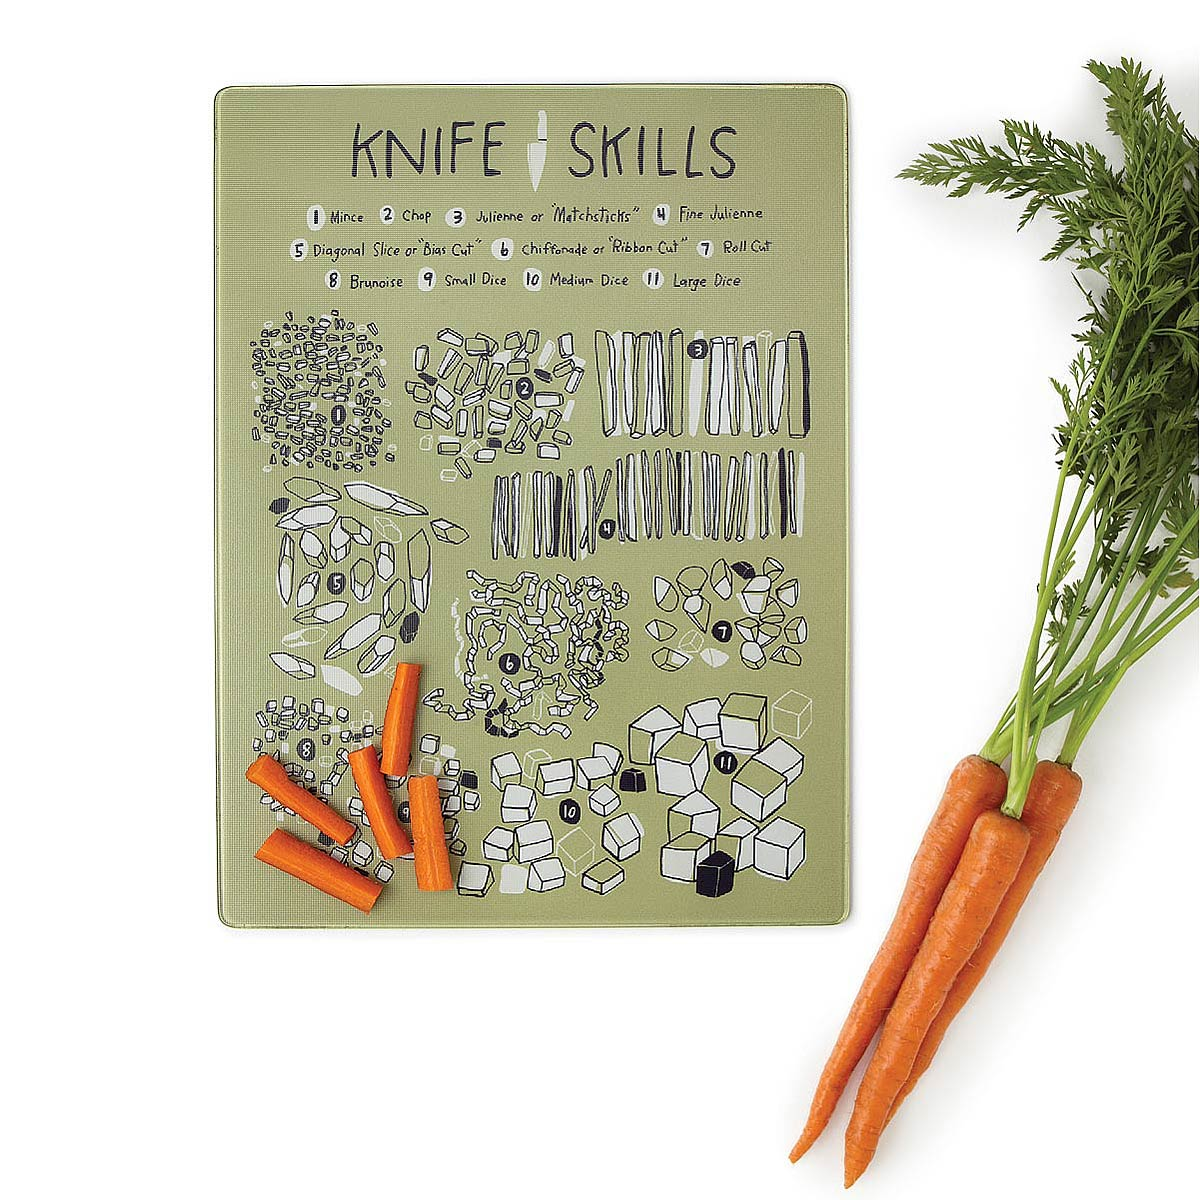 knife skills cutting board  cooking illustrated  uncommongoods, Kitchen design